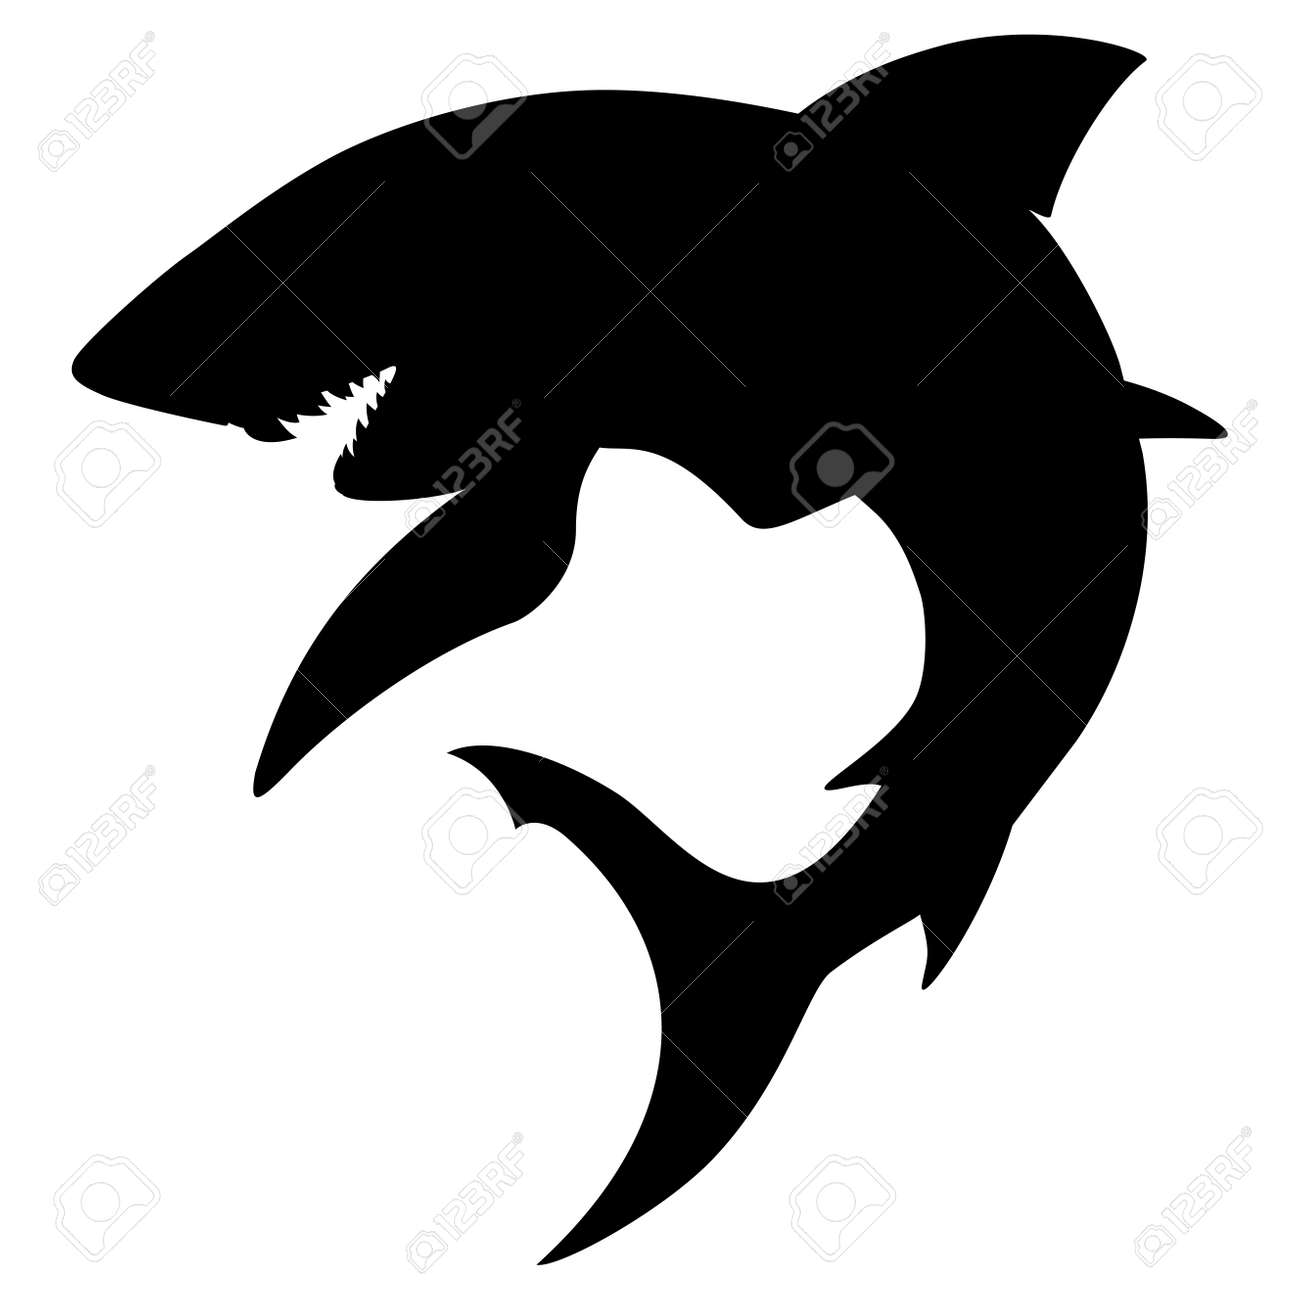 Shark Silhouette Royalty Free Cliparts Vectors And Stock Illustration Image 2646028 Free for commercial use with attribution. shark silhouette